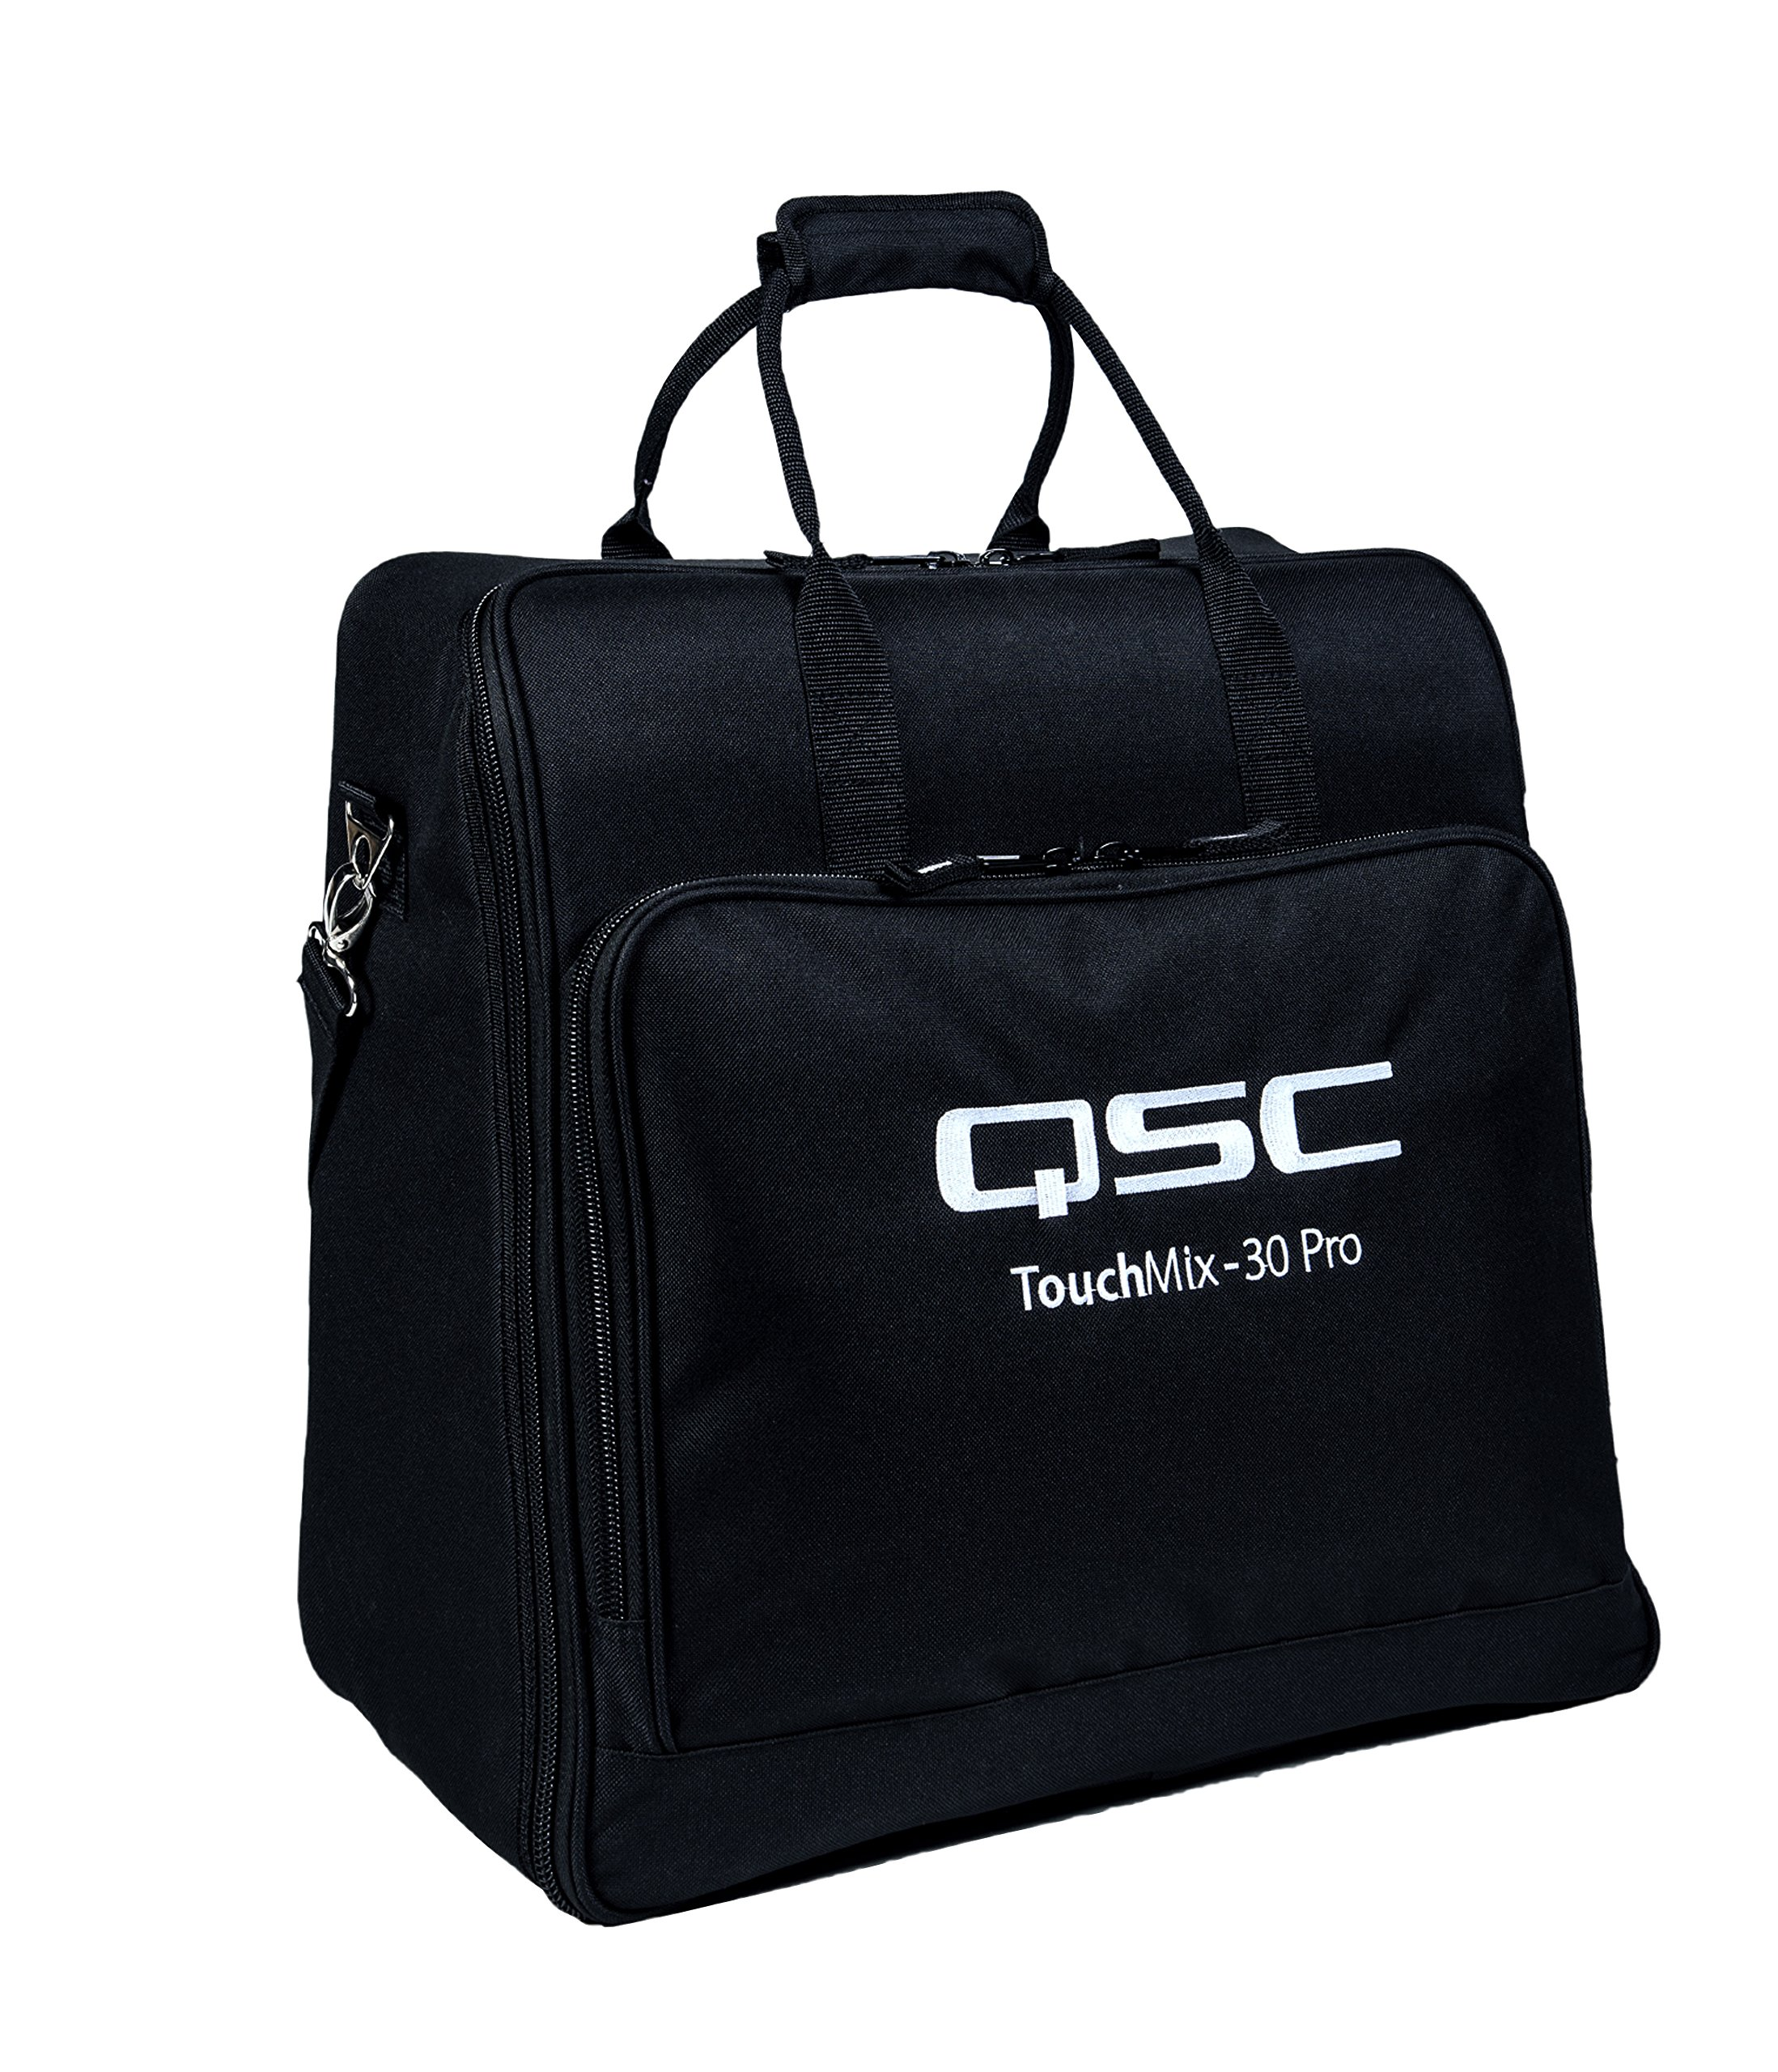 QSC TouchMix-30 Carrying Tote by QSC